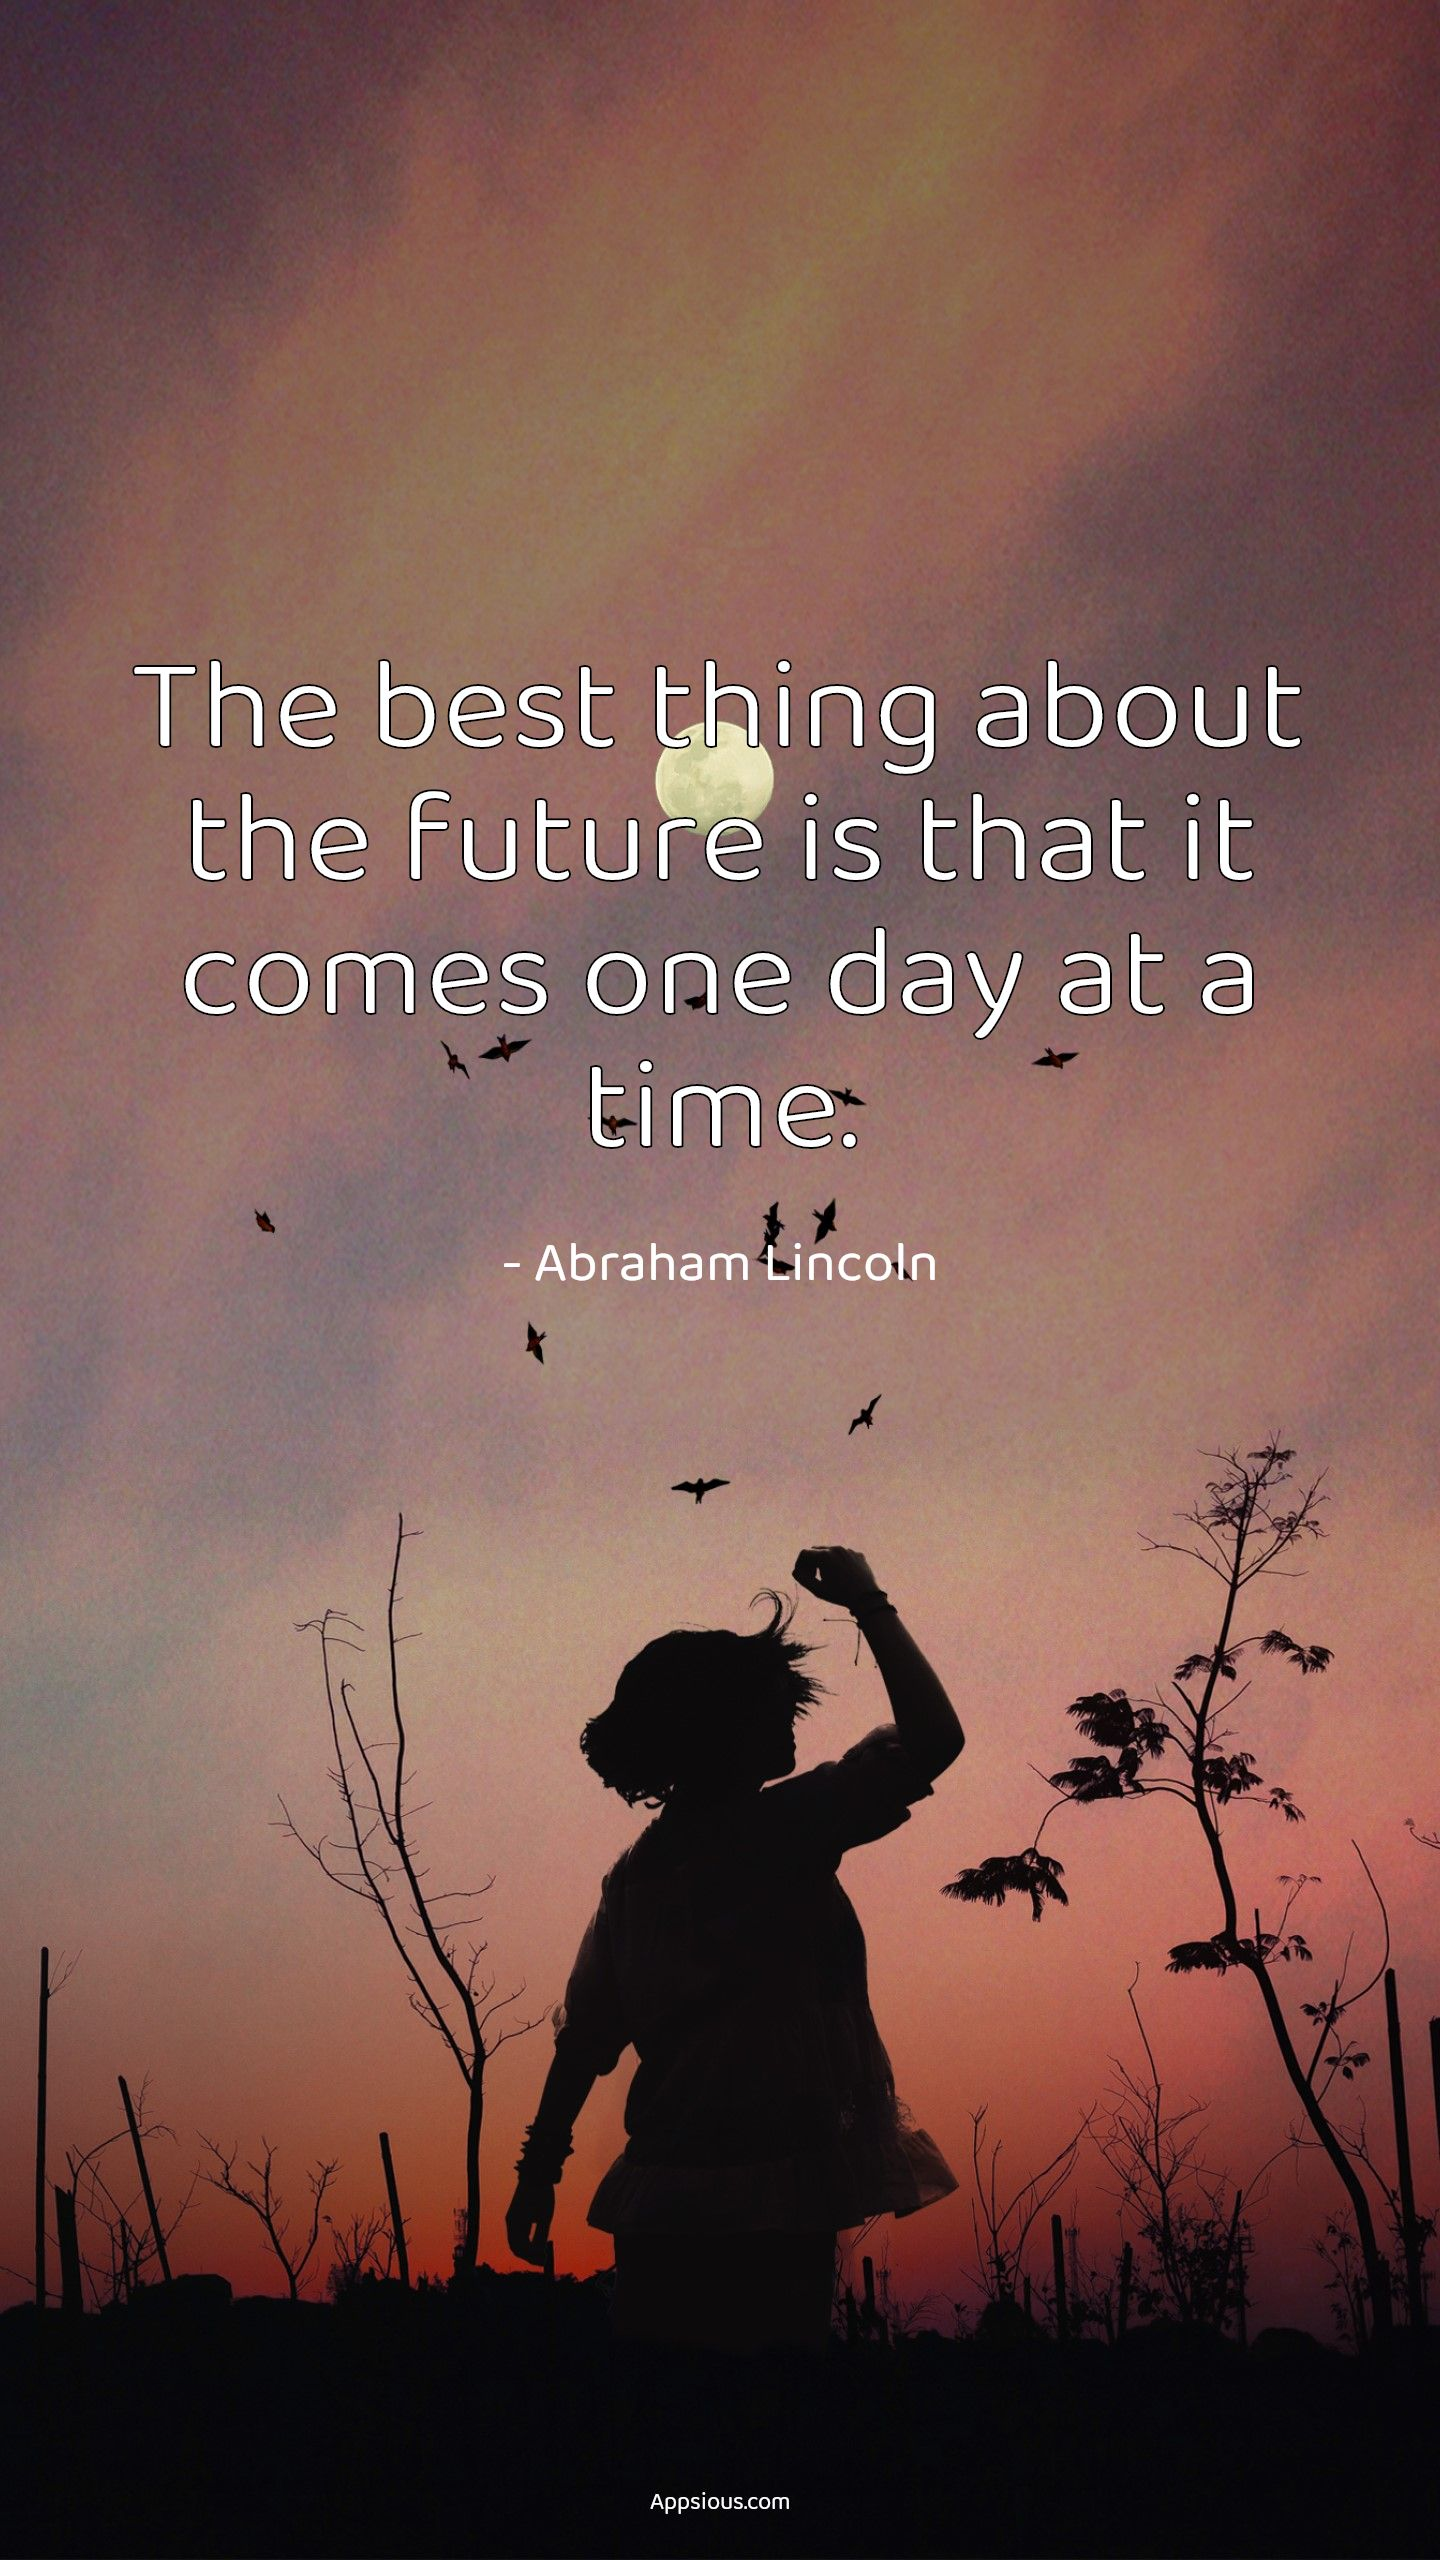 The best thing about the future is that it comes one day at a time.